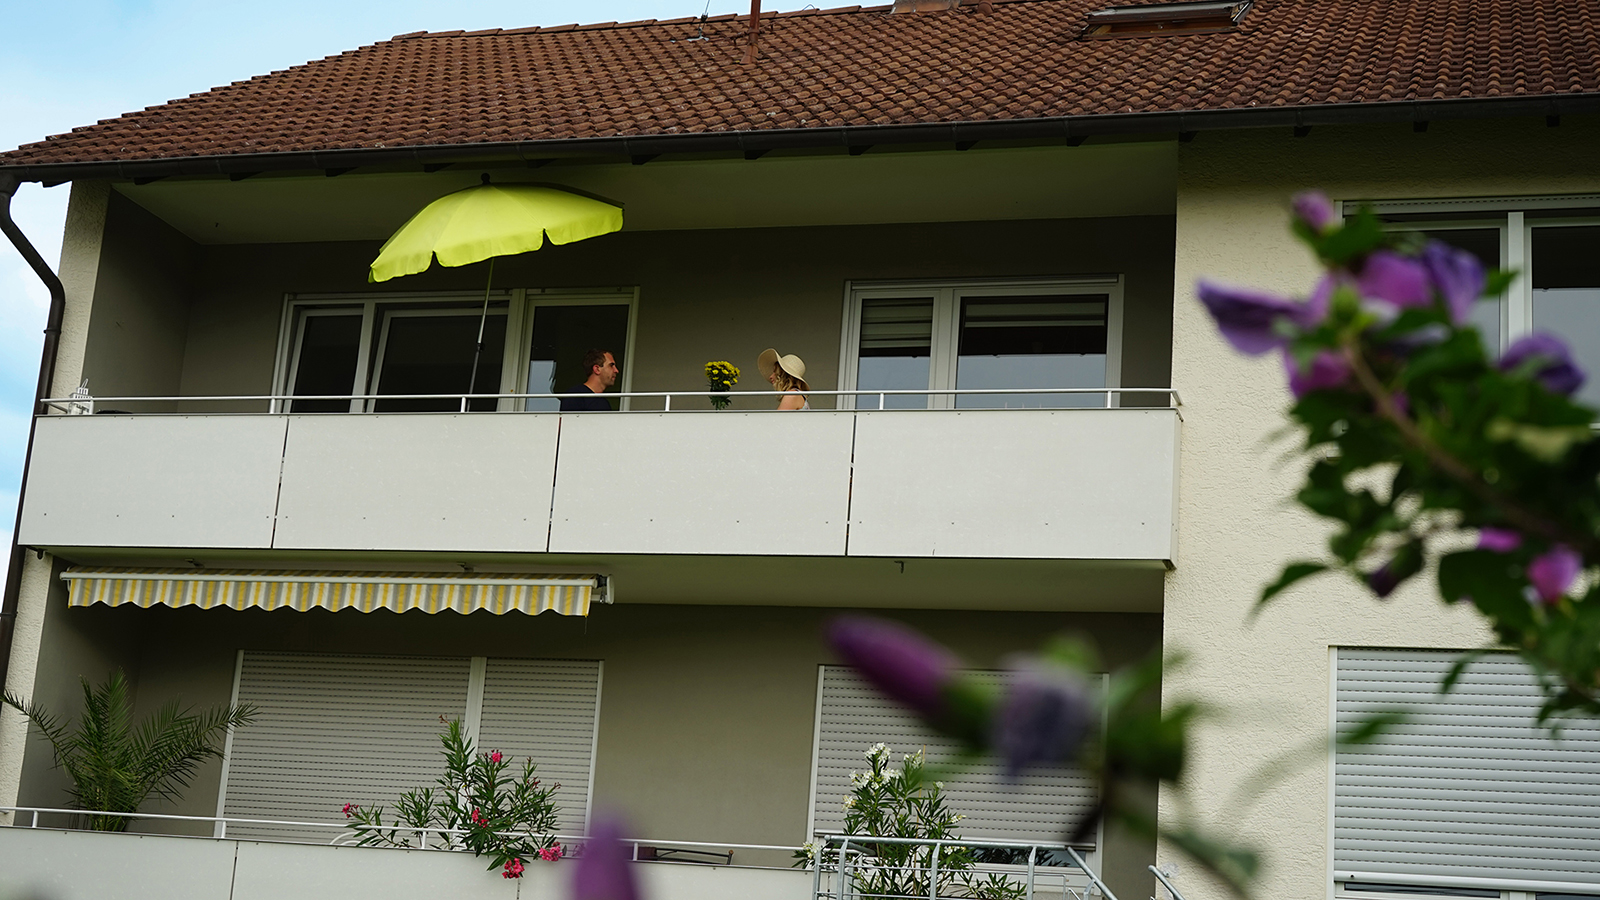 Holiday apartments on Lake Constance: Weitblick - Exterior View